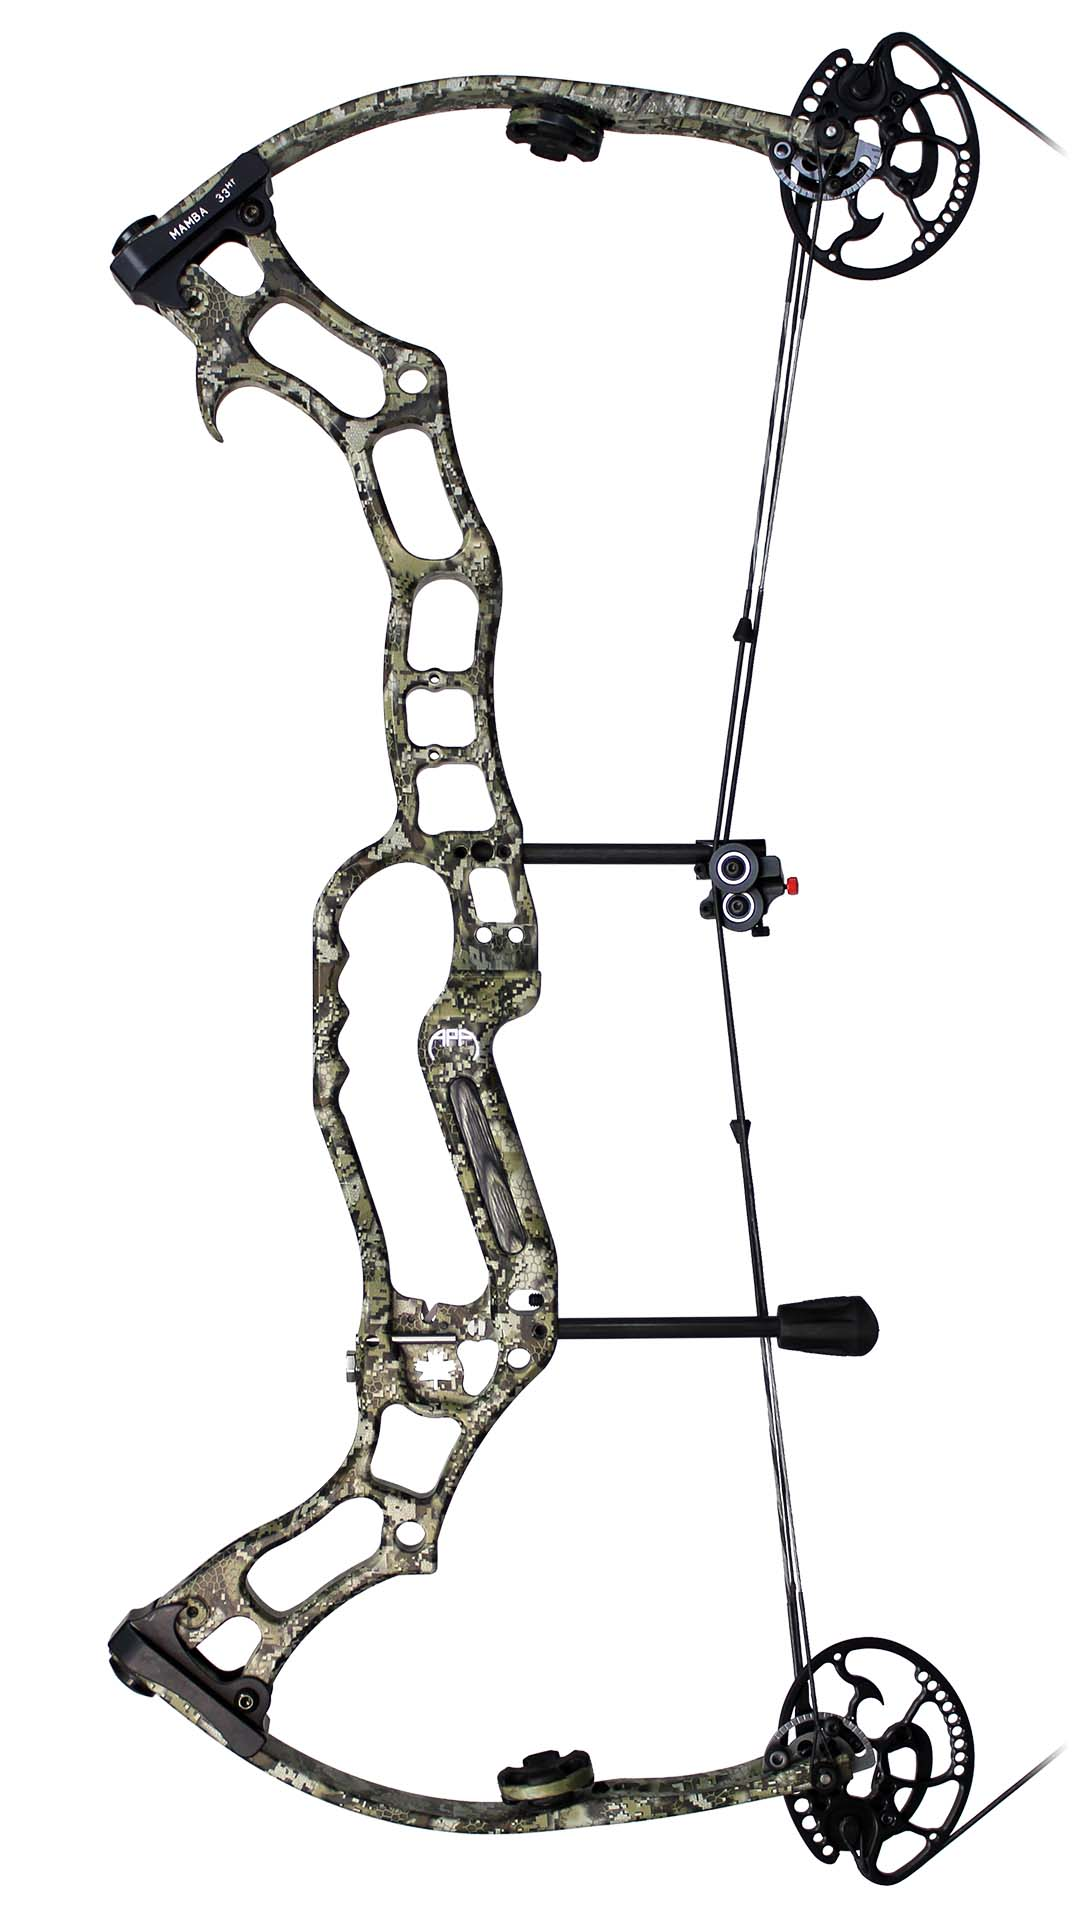 APA Mamba 33 MT Compound Bow - Side View Image